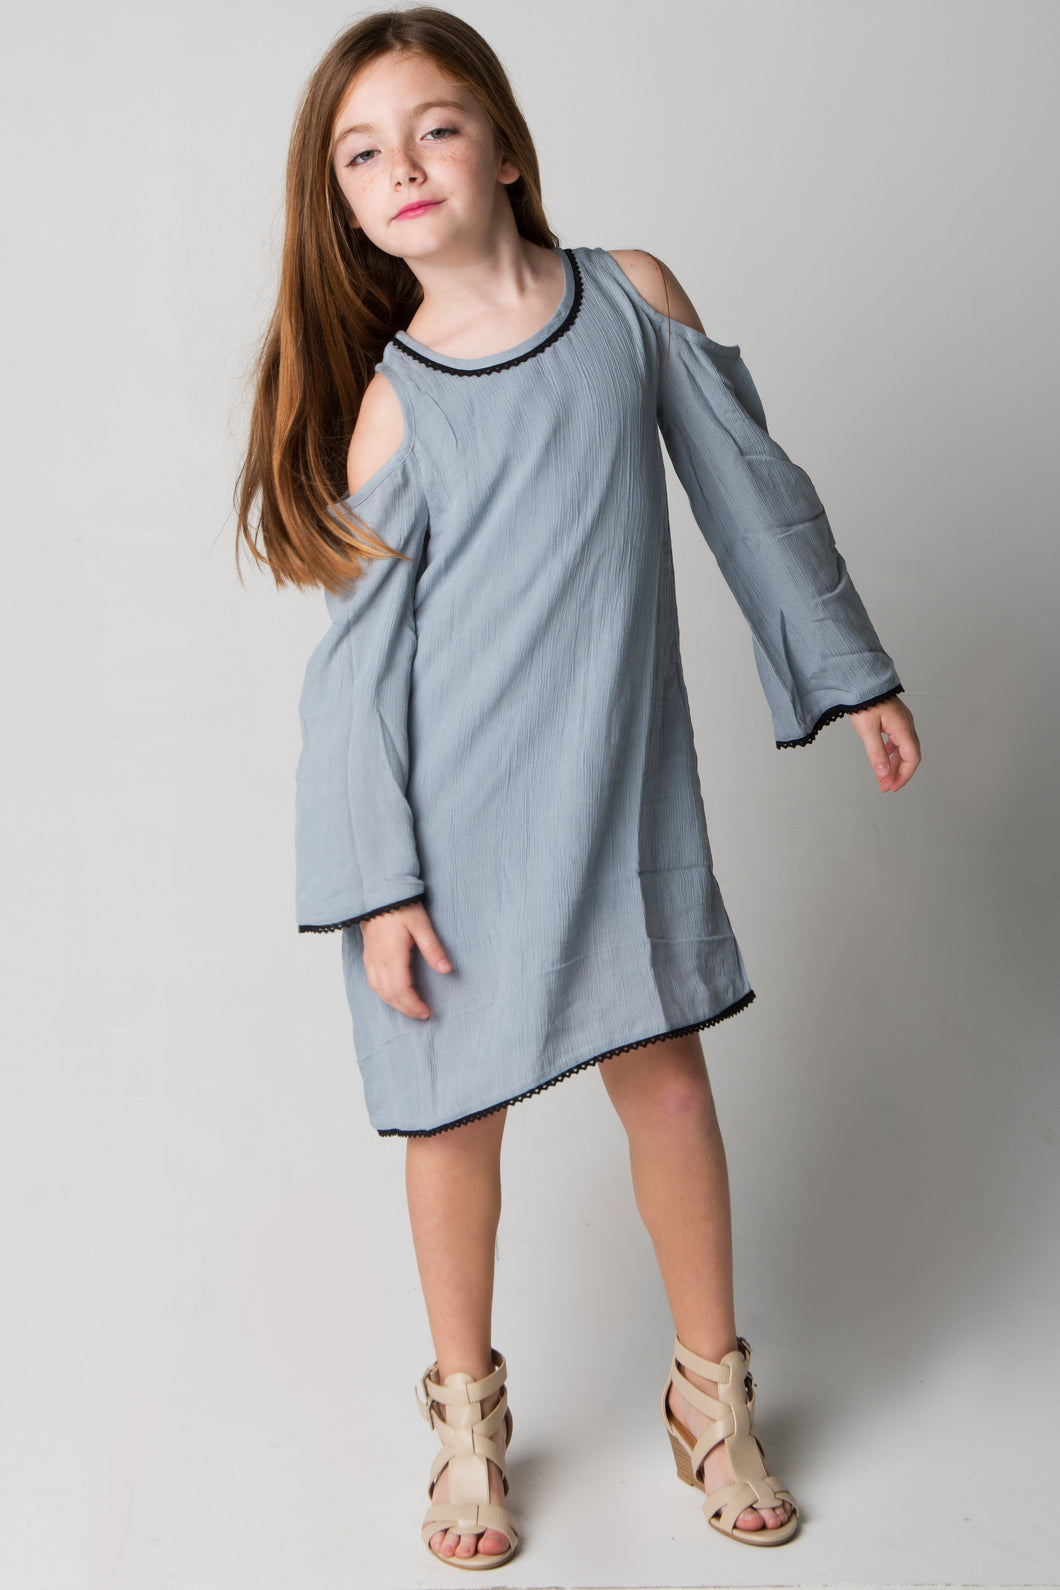 Grey Lace Detail Cold-Shoulder Dress - Kids Clothing, Dress - Girls Dress, Yo Baby Online - Yo Baby